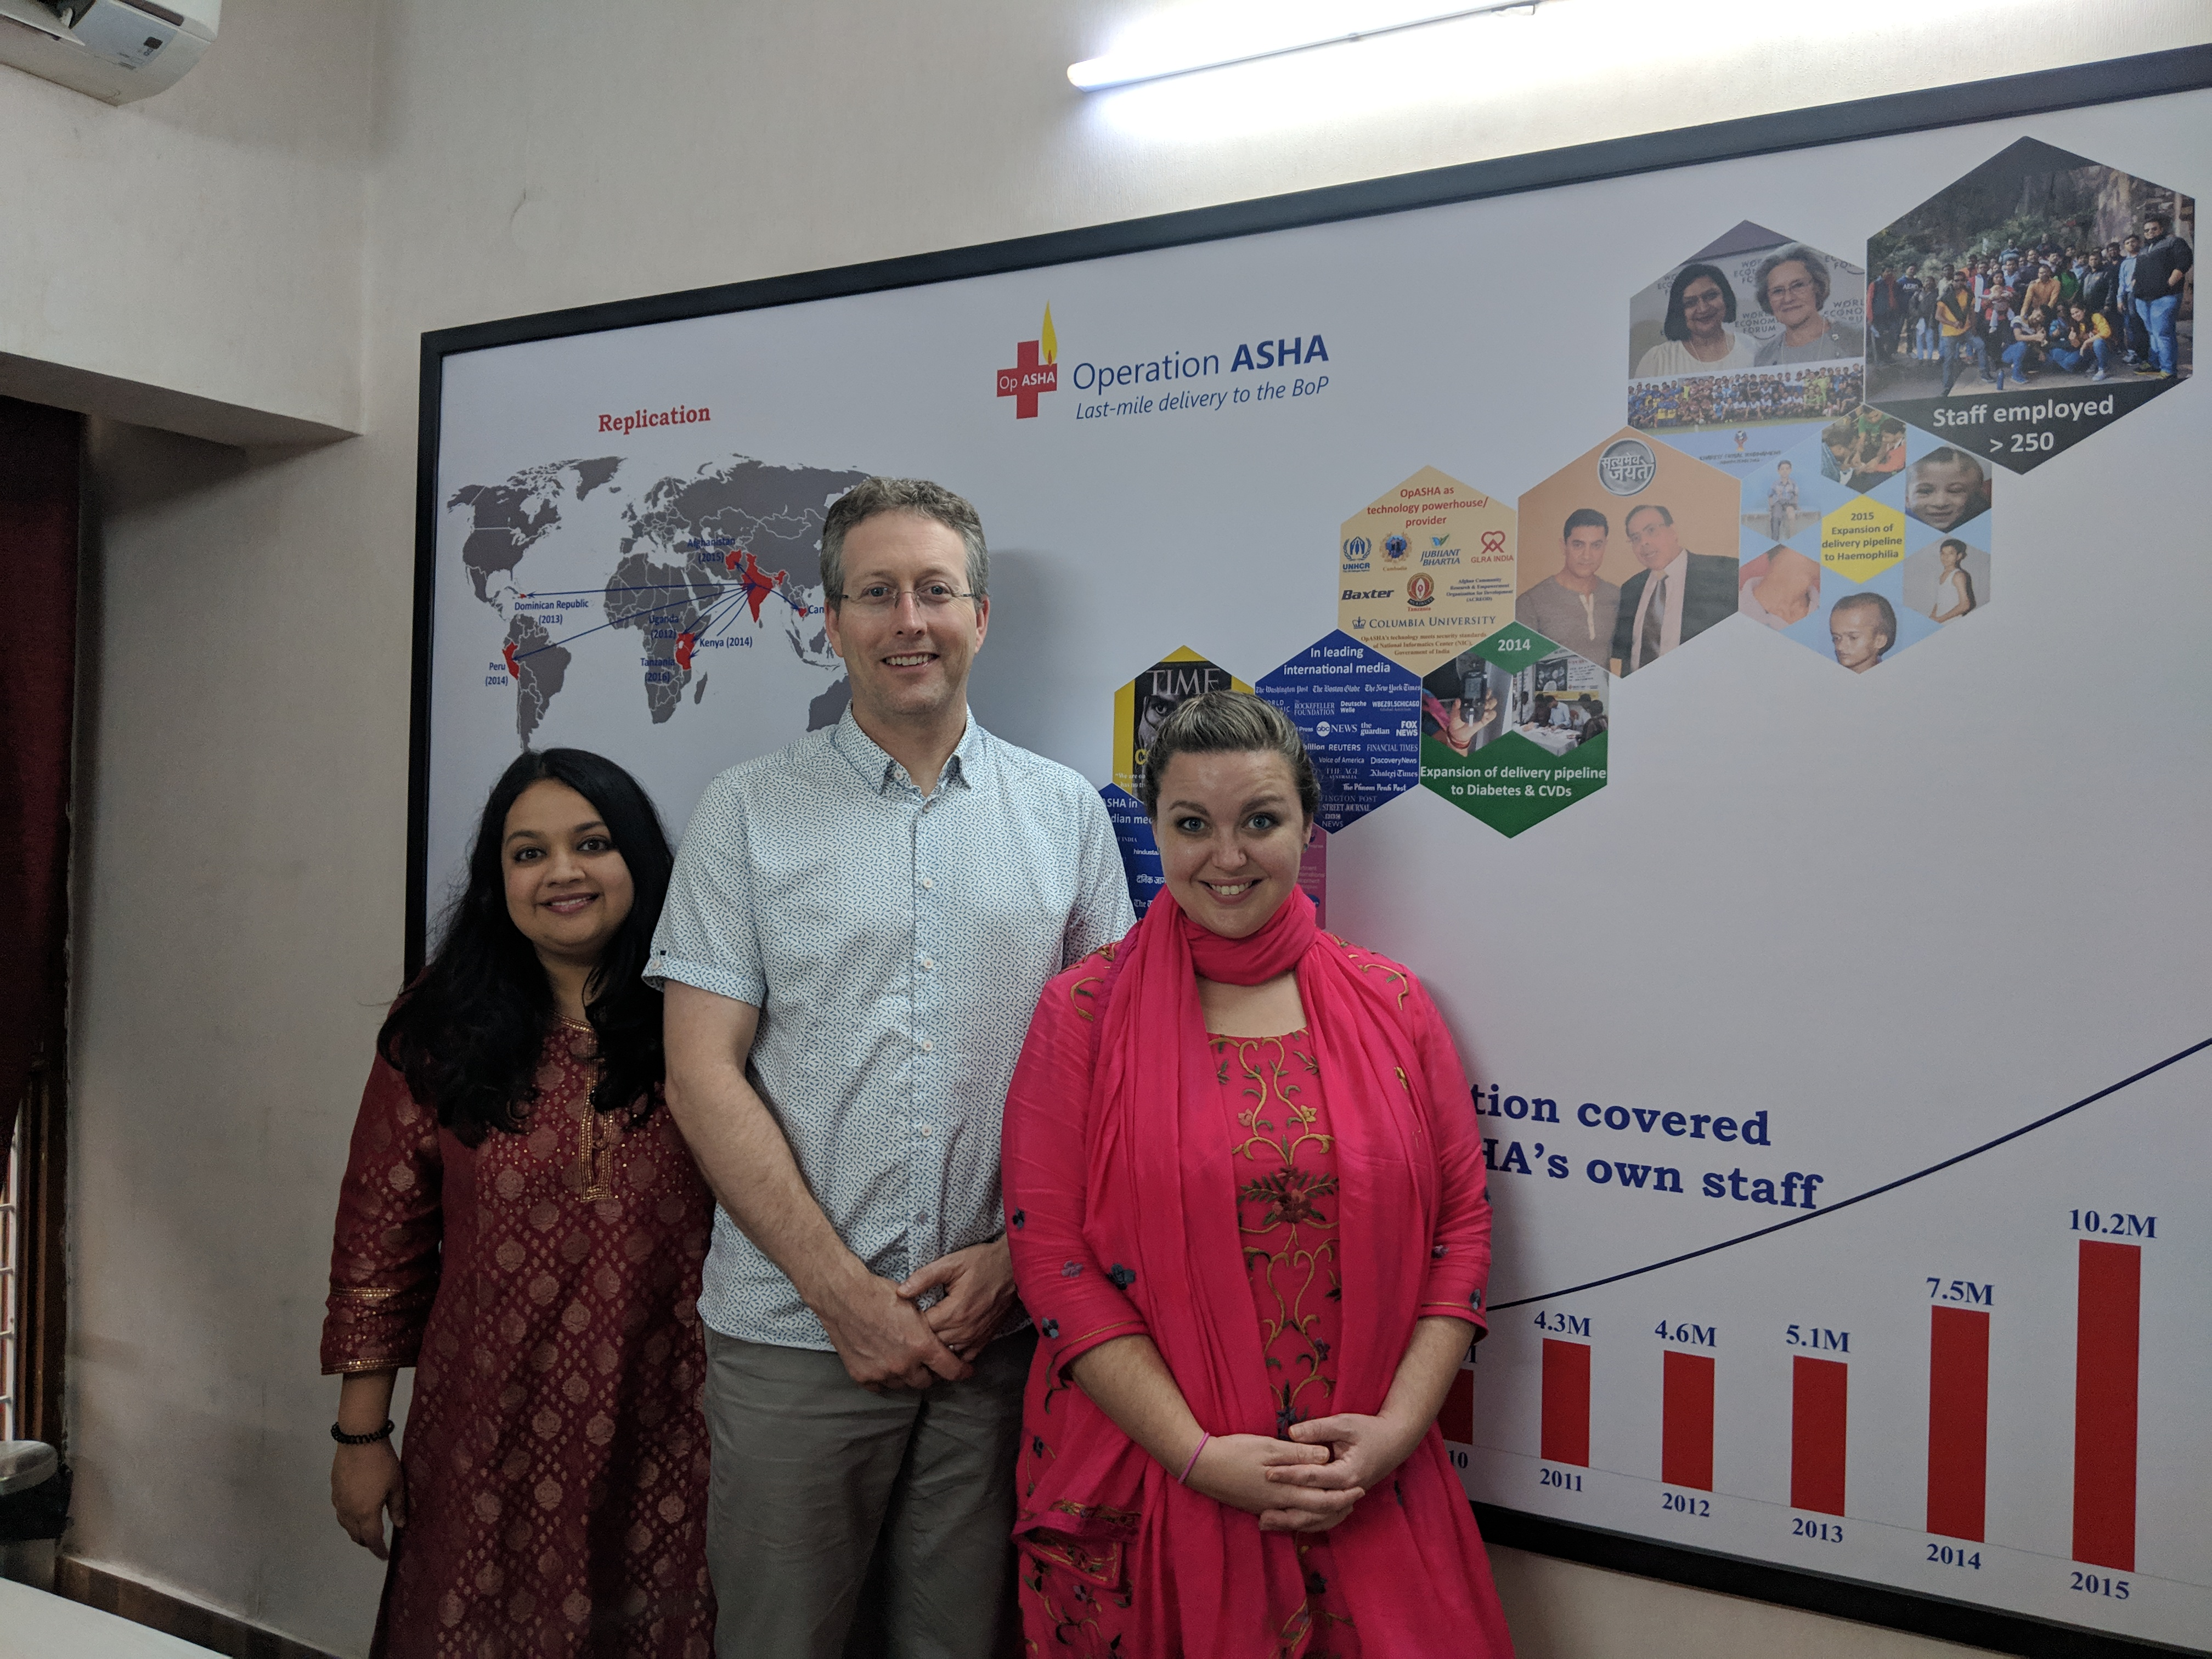 Tableau volunteers Michael and Lauren with Operation ASHA Director Sonali in front of a poster in the Operation ASHA offices